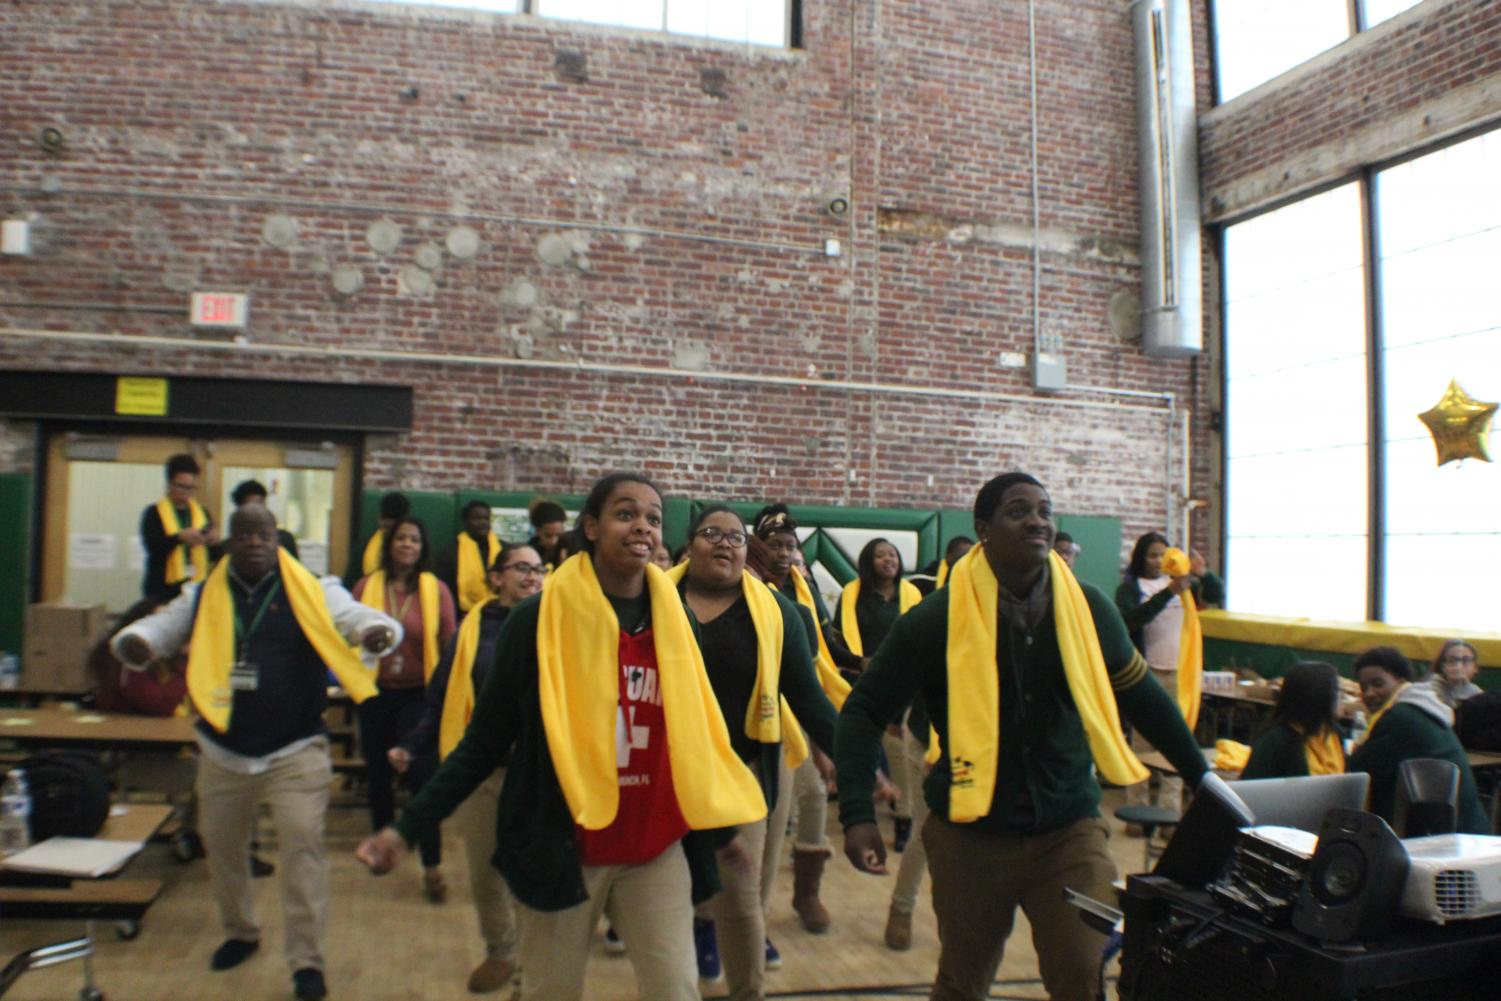 Students dancing during the National School Choice Week ceremony.